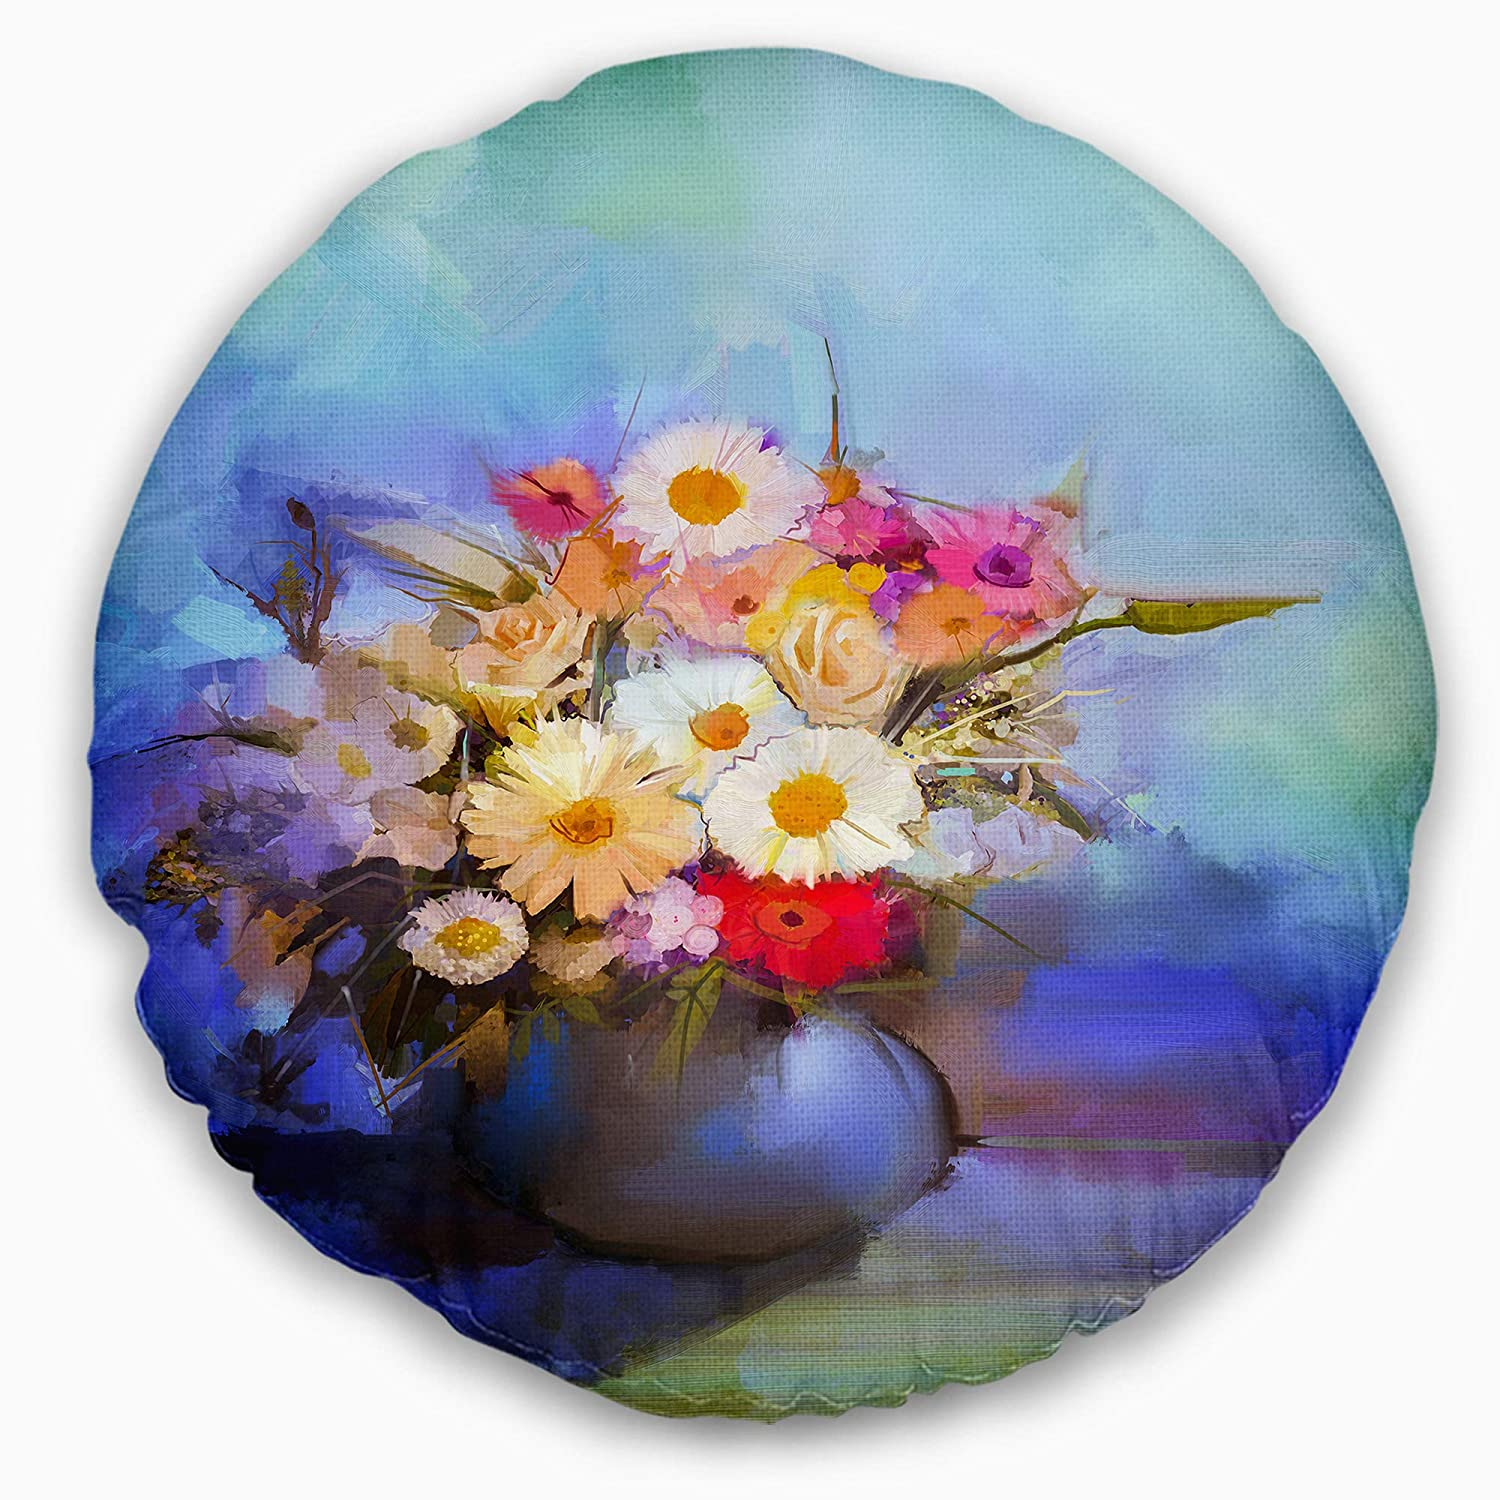 Sofa Throw Pillow 20 Designart CU14113-20-20-C Beautiful Flowers Bouquet on Blue Floral Round Cushion Cover for Living Room